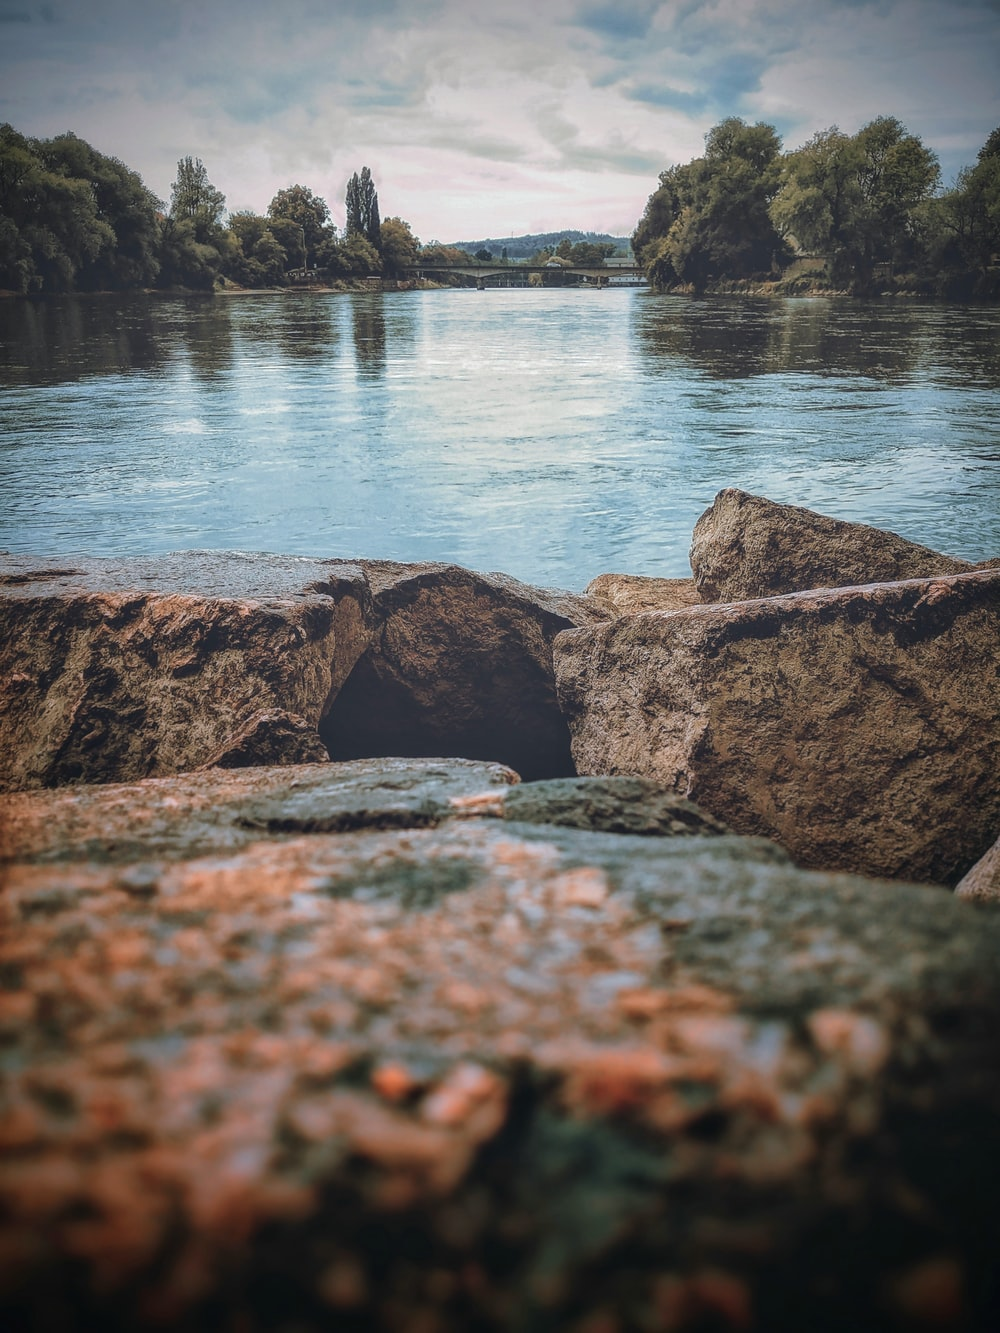 low-angle photography of stones near body of water at daytime